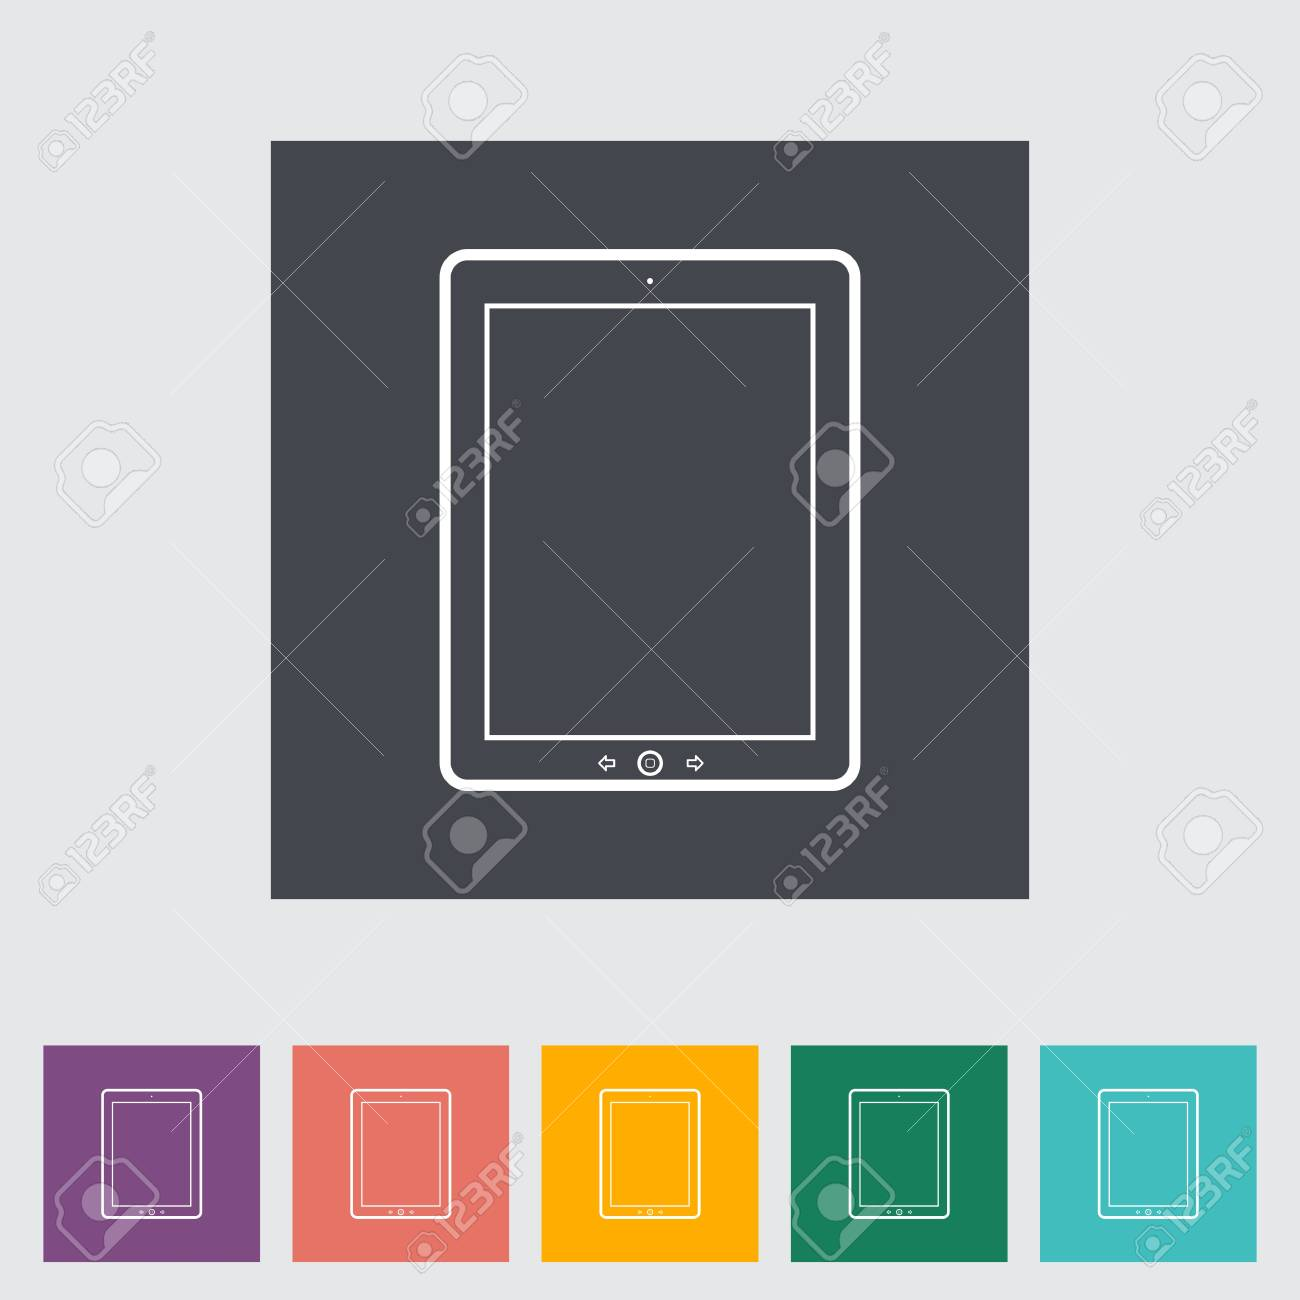 Tablet PC flat icon. illustration. Stock Vector - 21113728